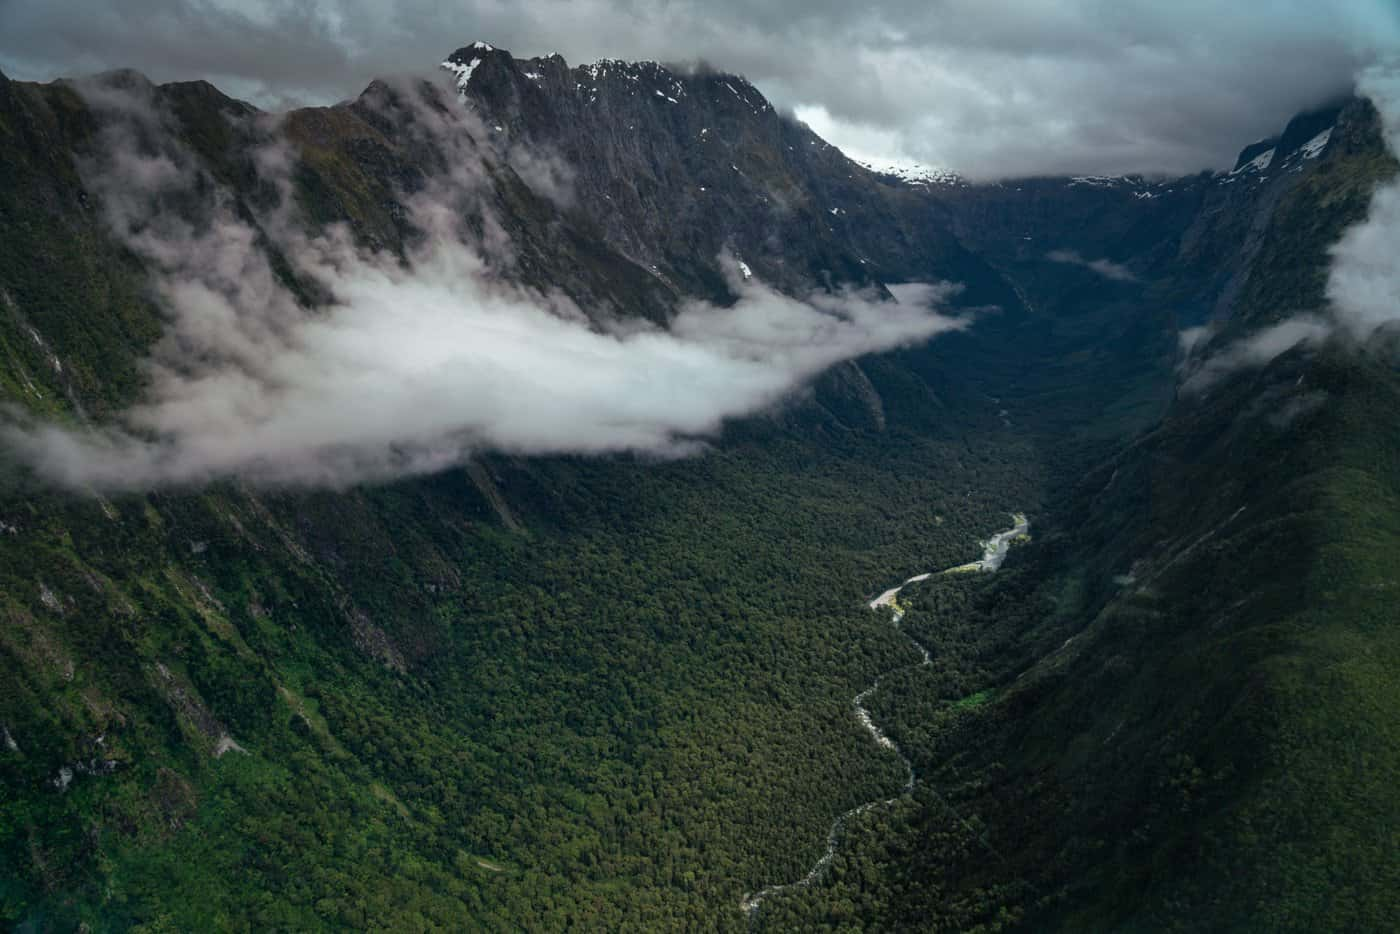 Incredible views were captured on our scenic flight from Queenstown to Milford Sound.